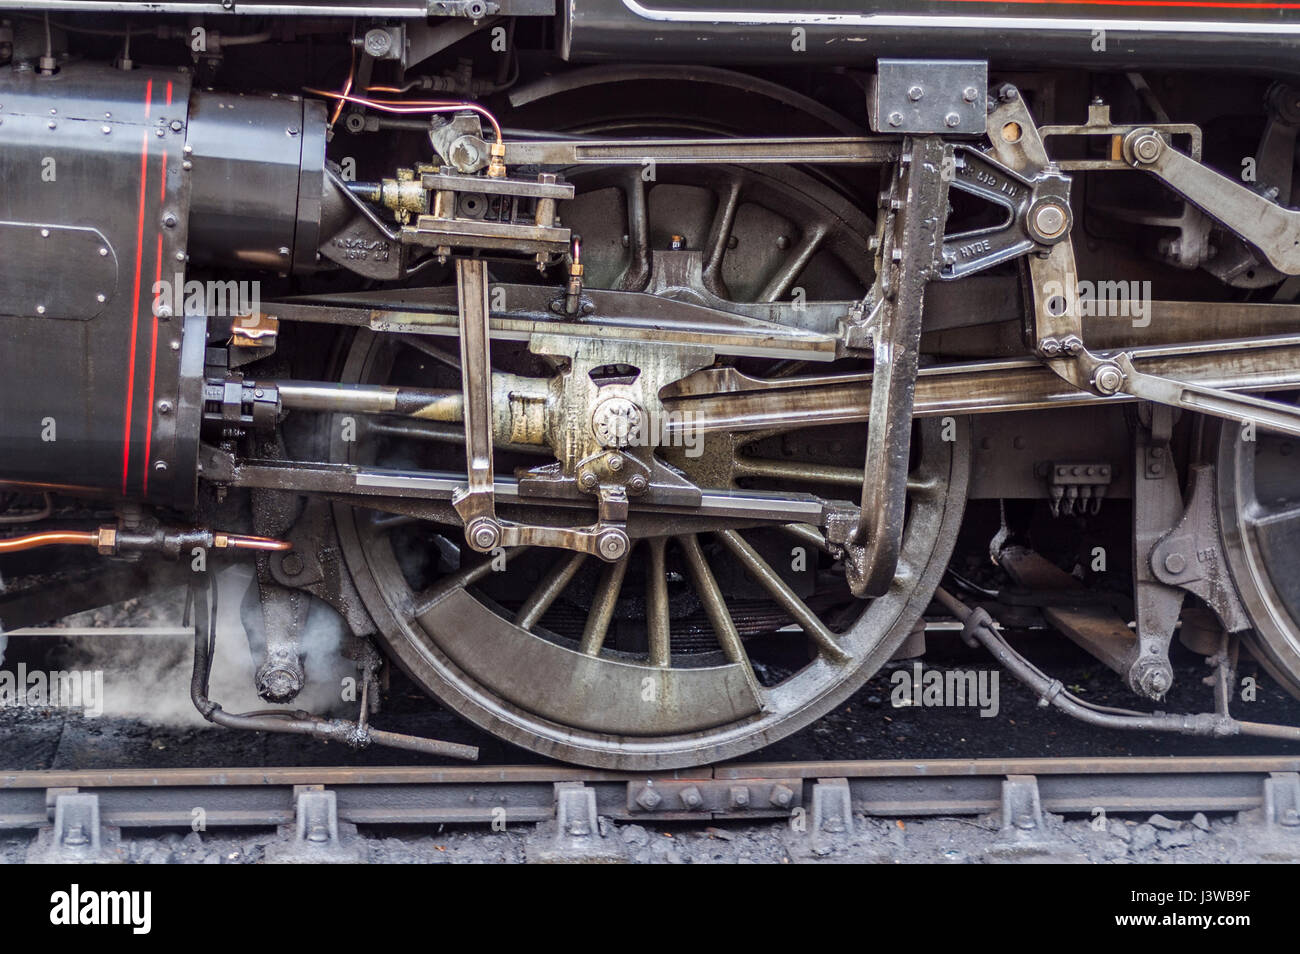 Closeup of the wheel on an old steam locomotive. - Stock Image